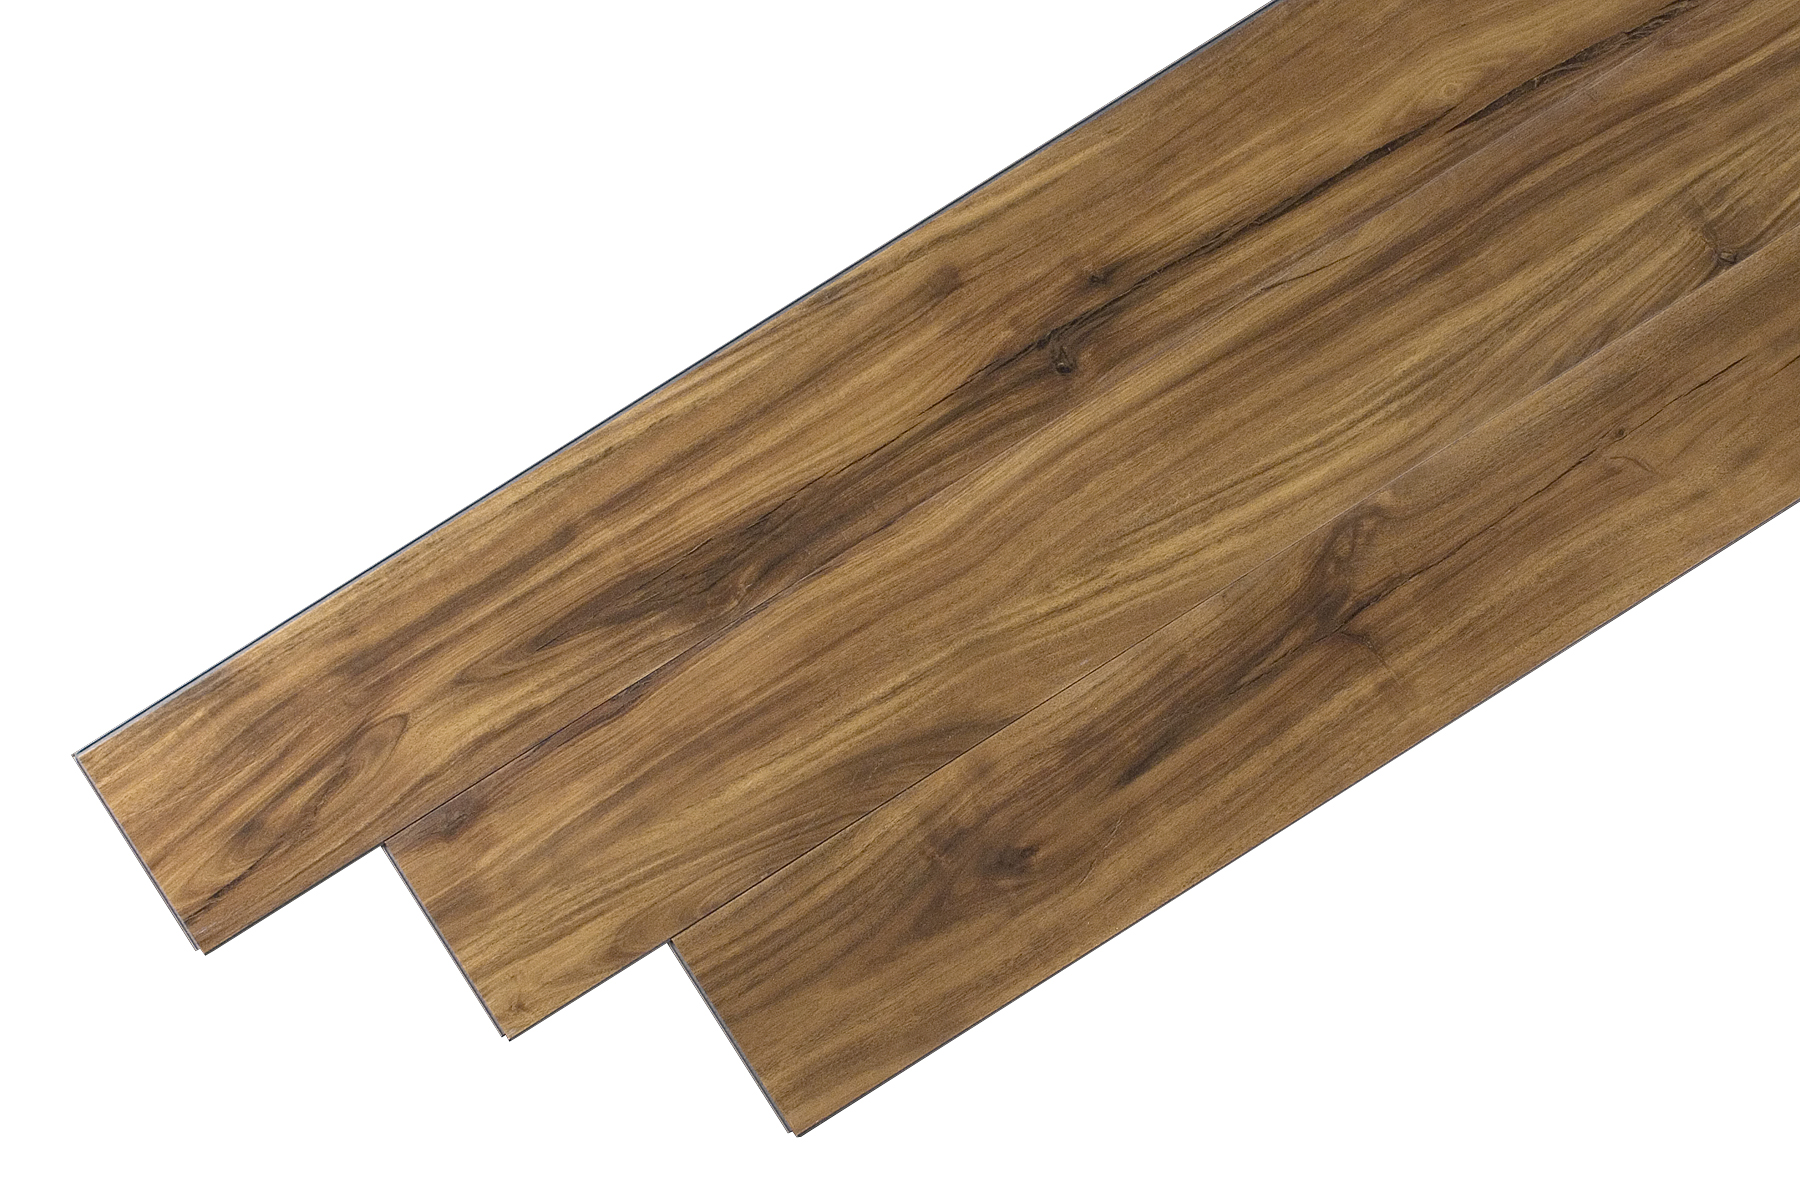 Get Free High Quality Hd Wallpapers Megaloc Laminate Flooring